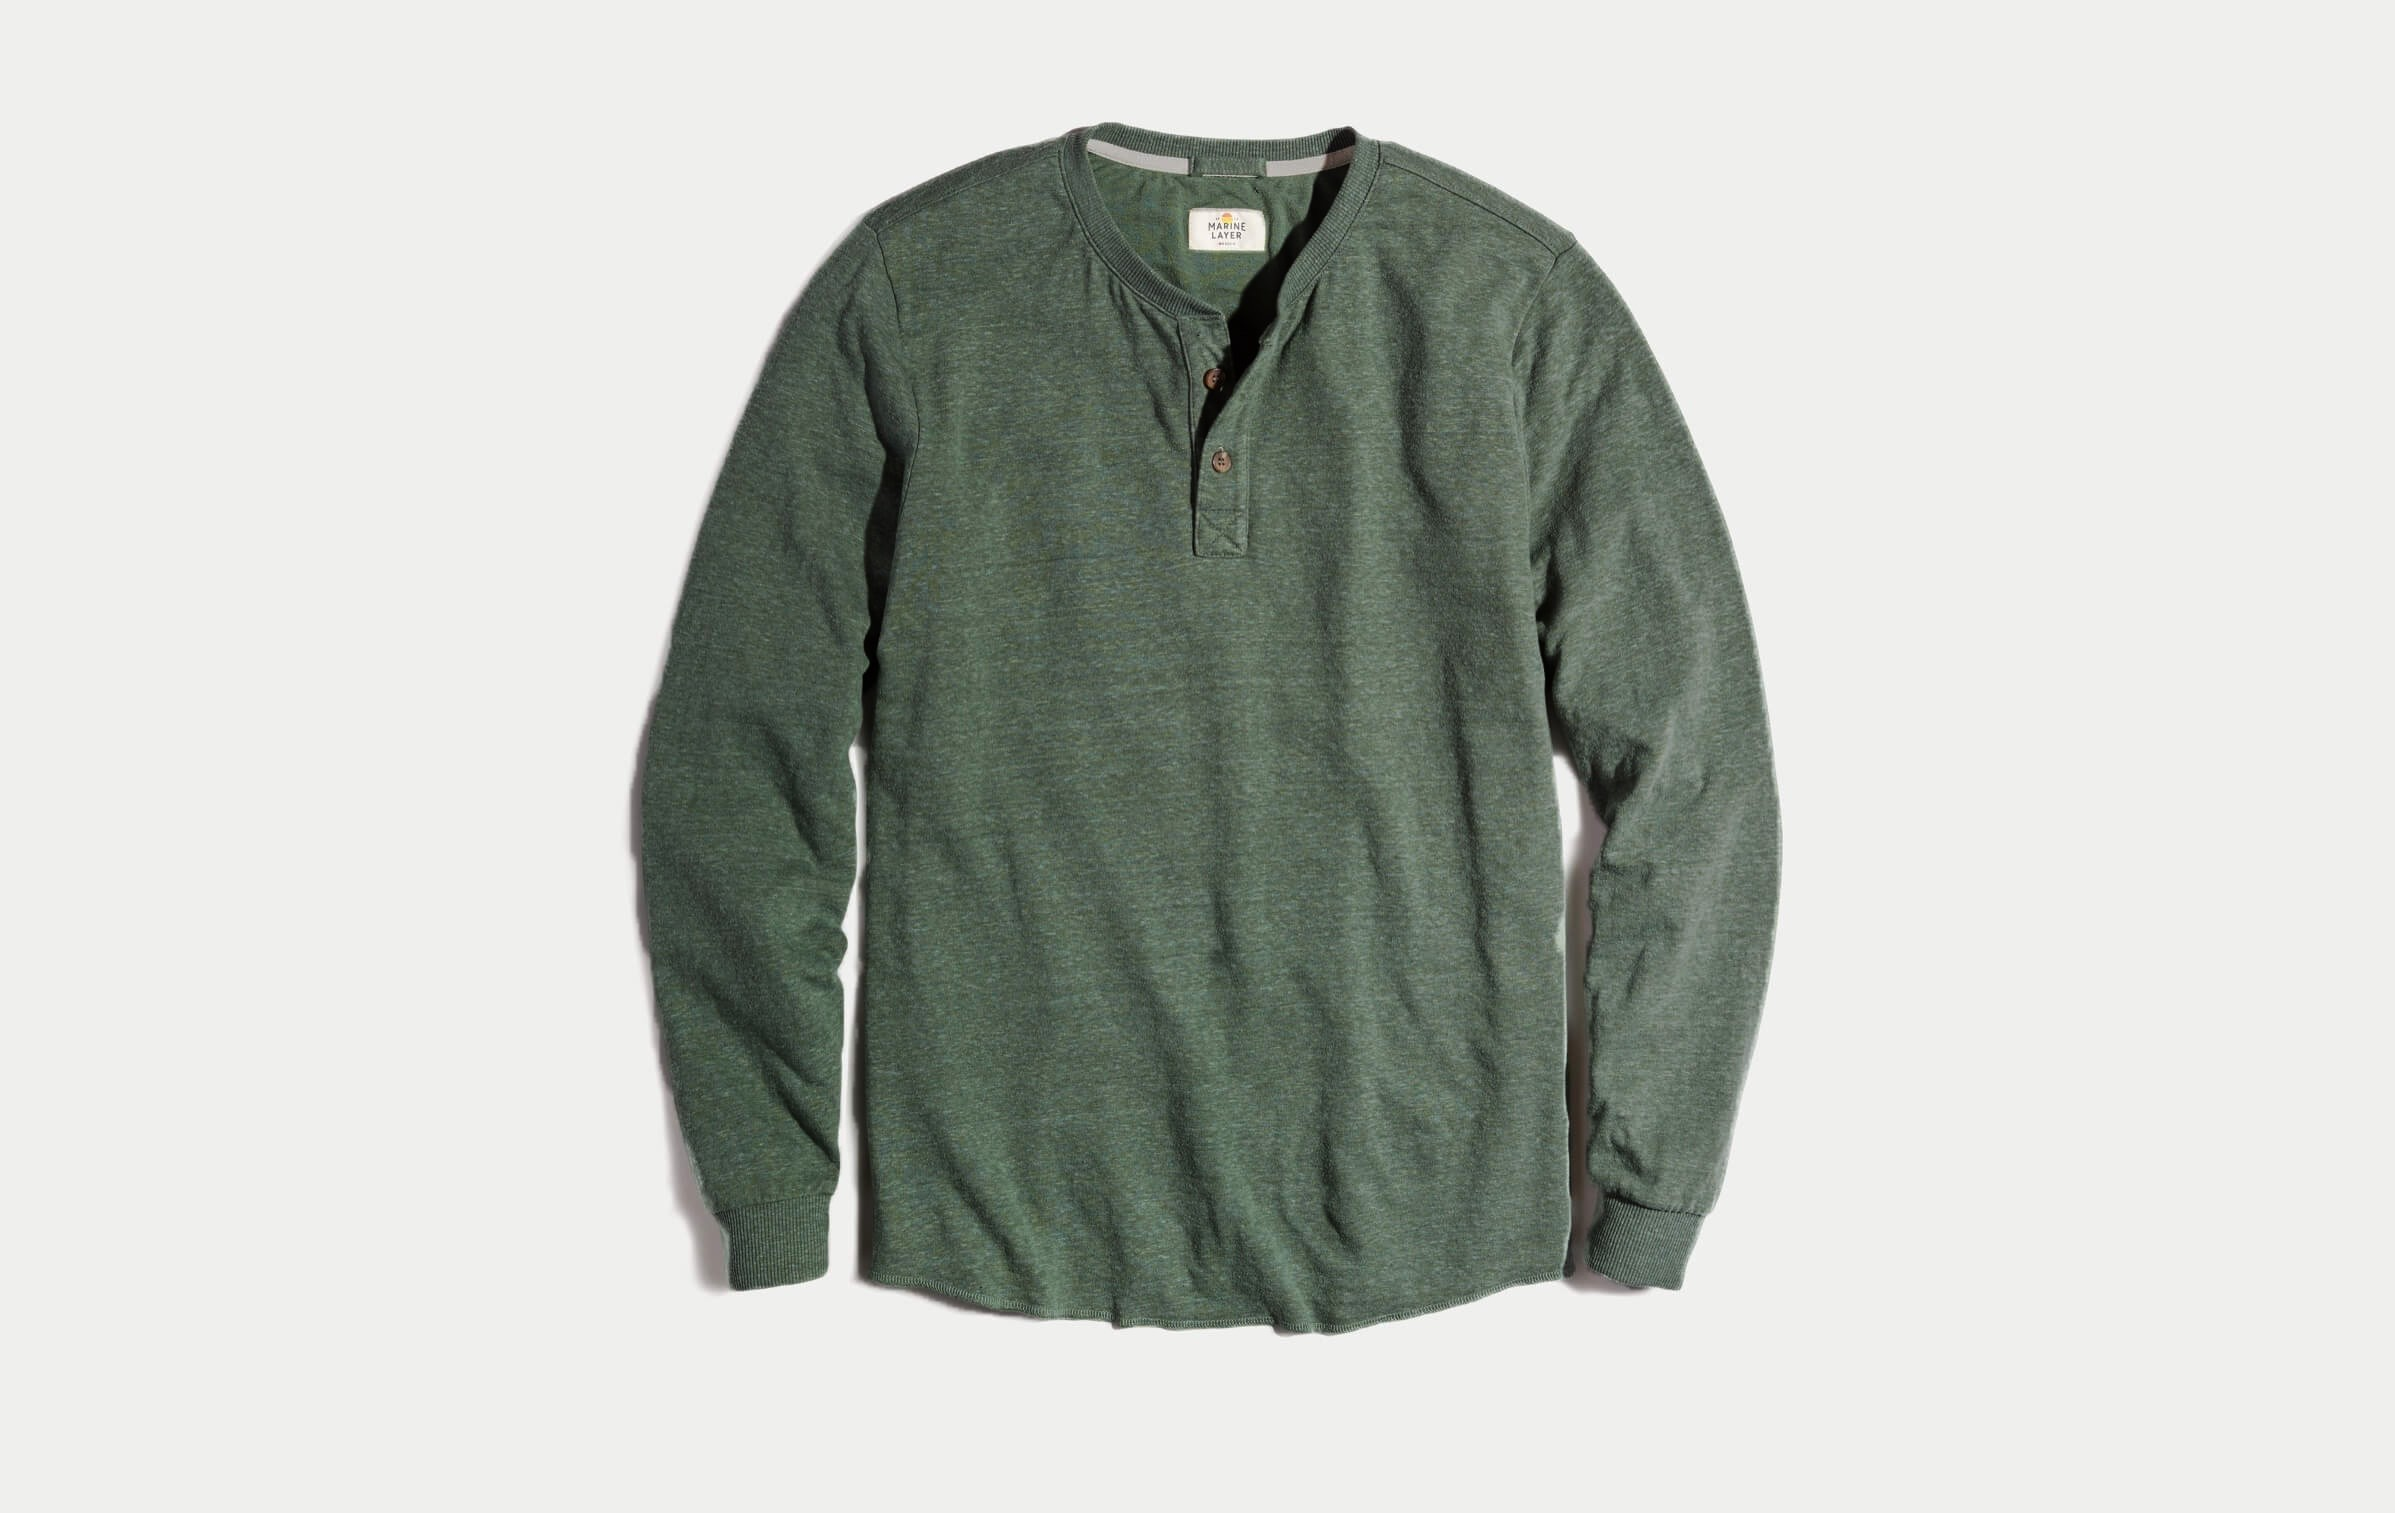 c6593b6c12c Double Knit Henley in Forest Green – Marine Layer